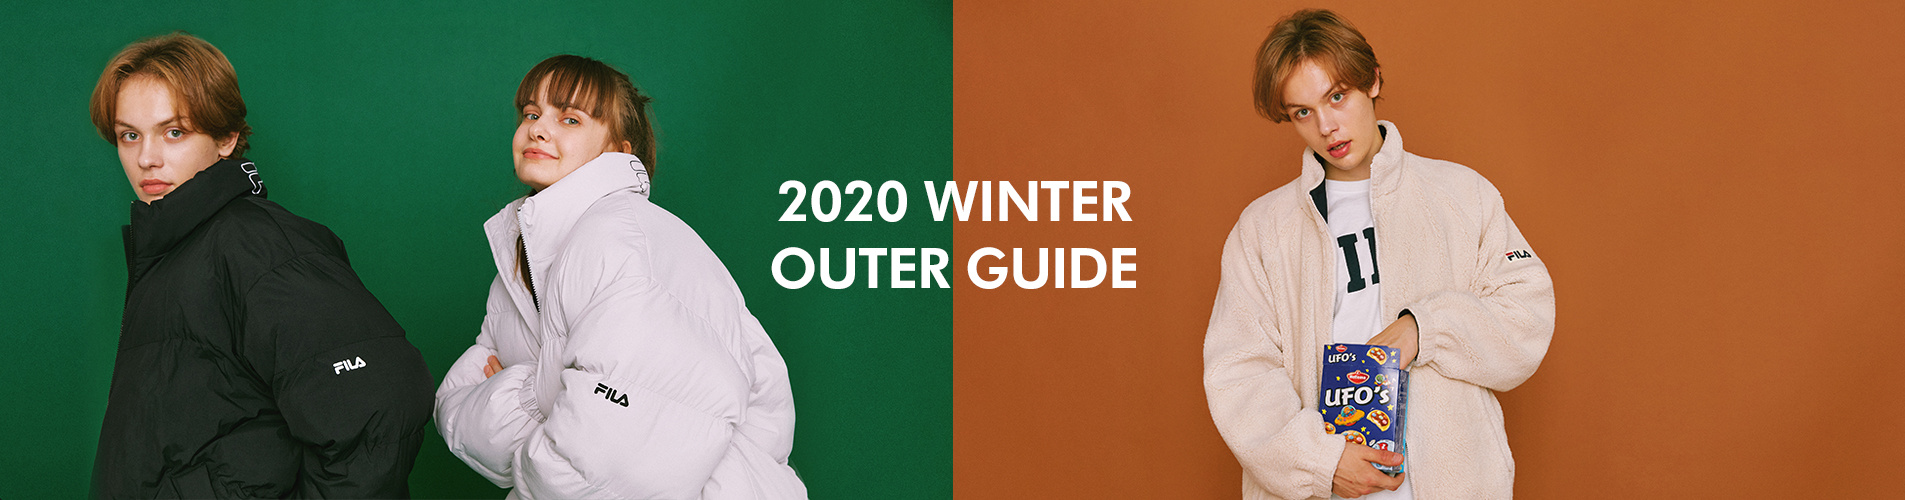 2020 WINTER OUTER GUIDE